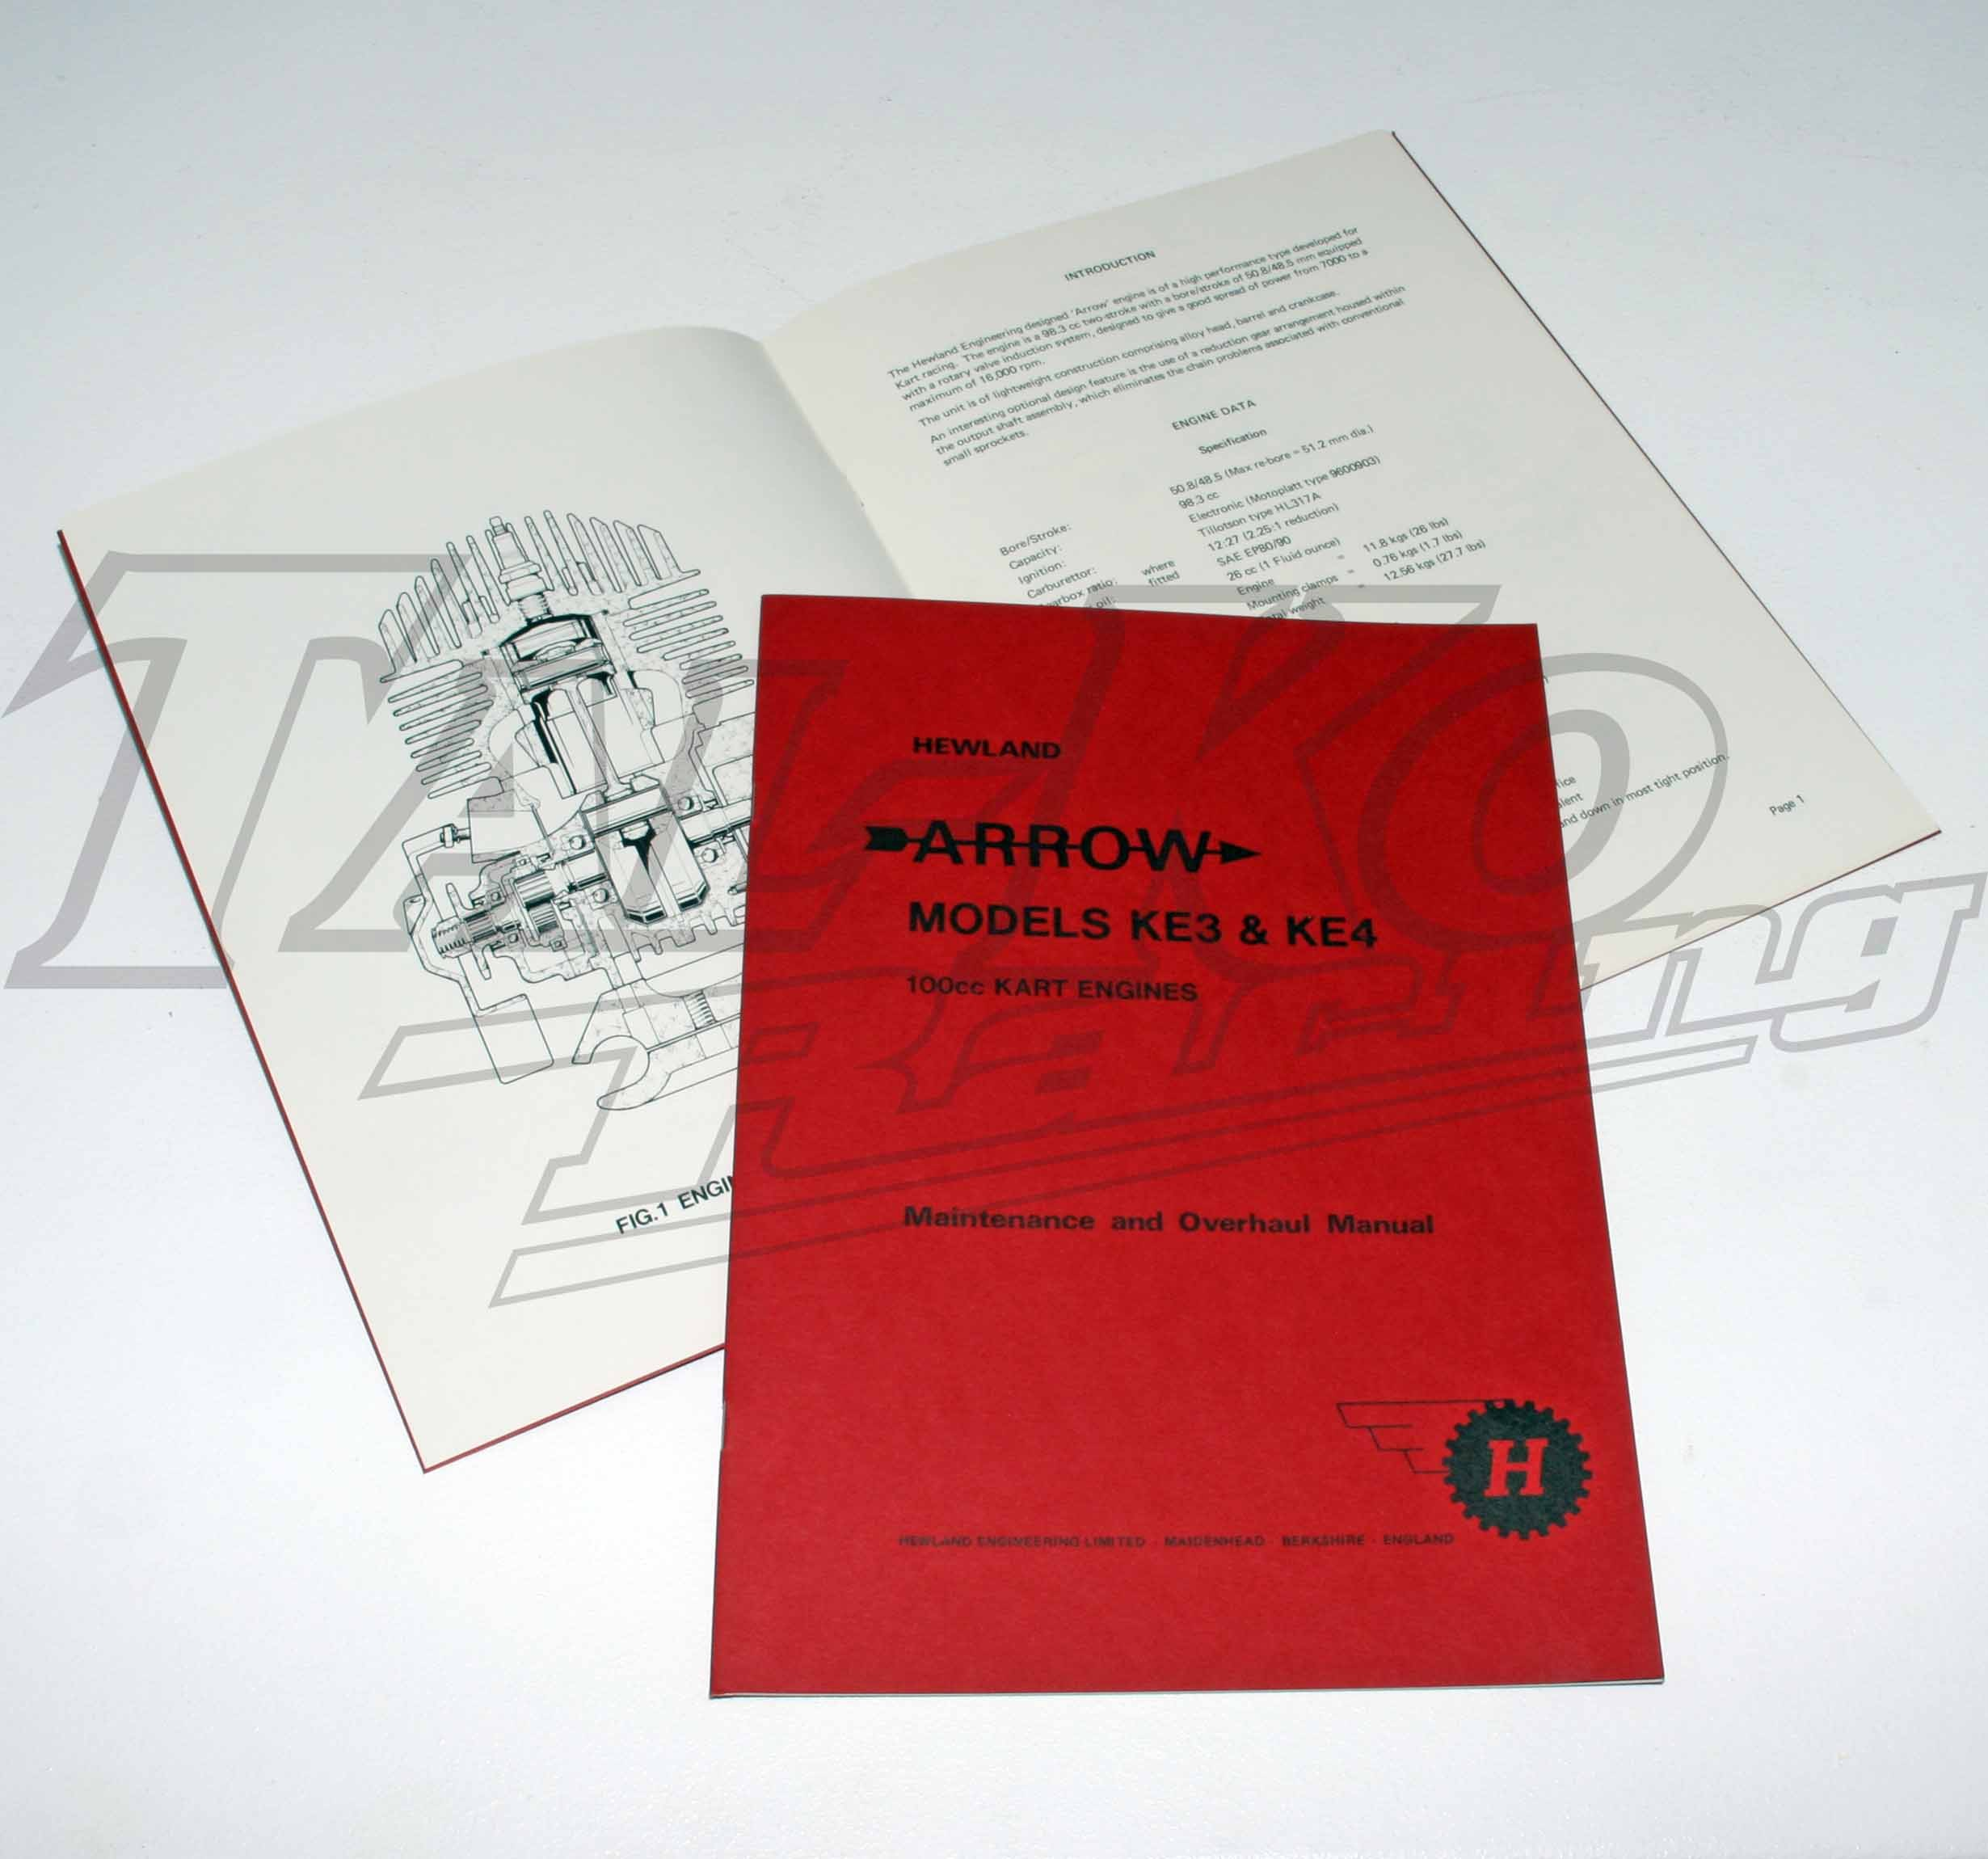 HEWLAND ARROW ORIGINAL MANUAL